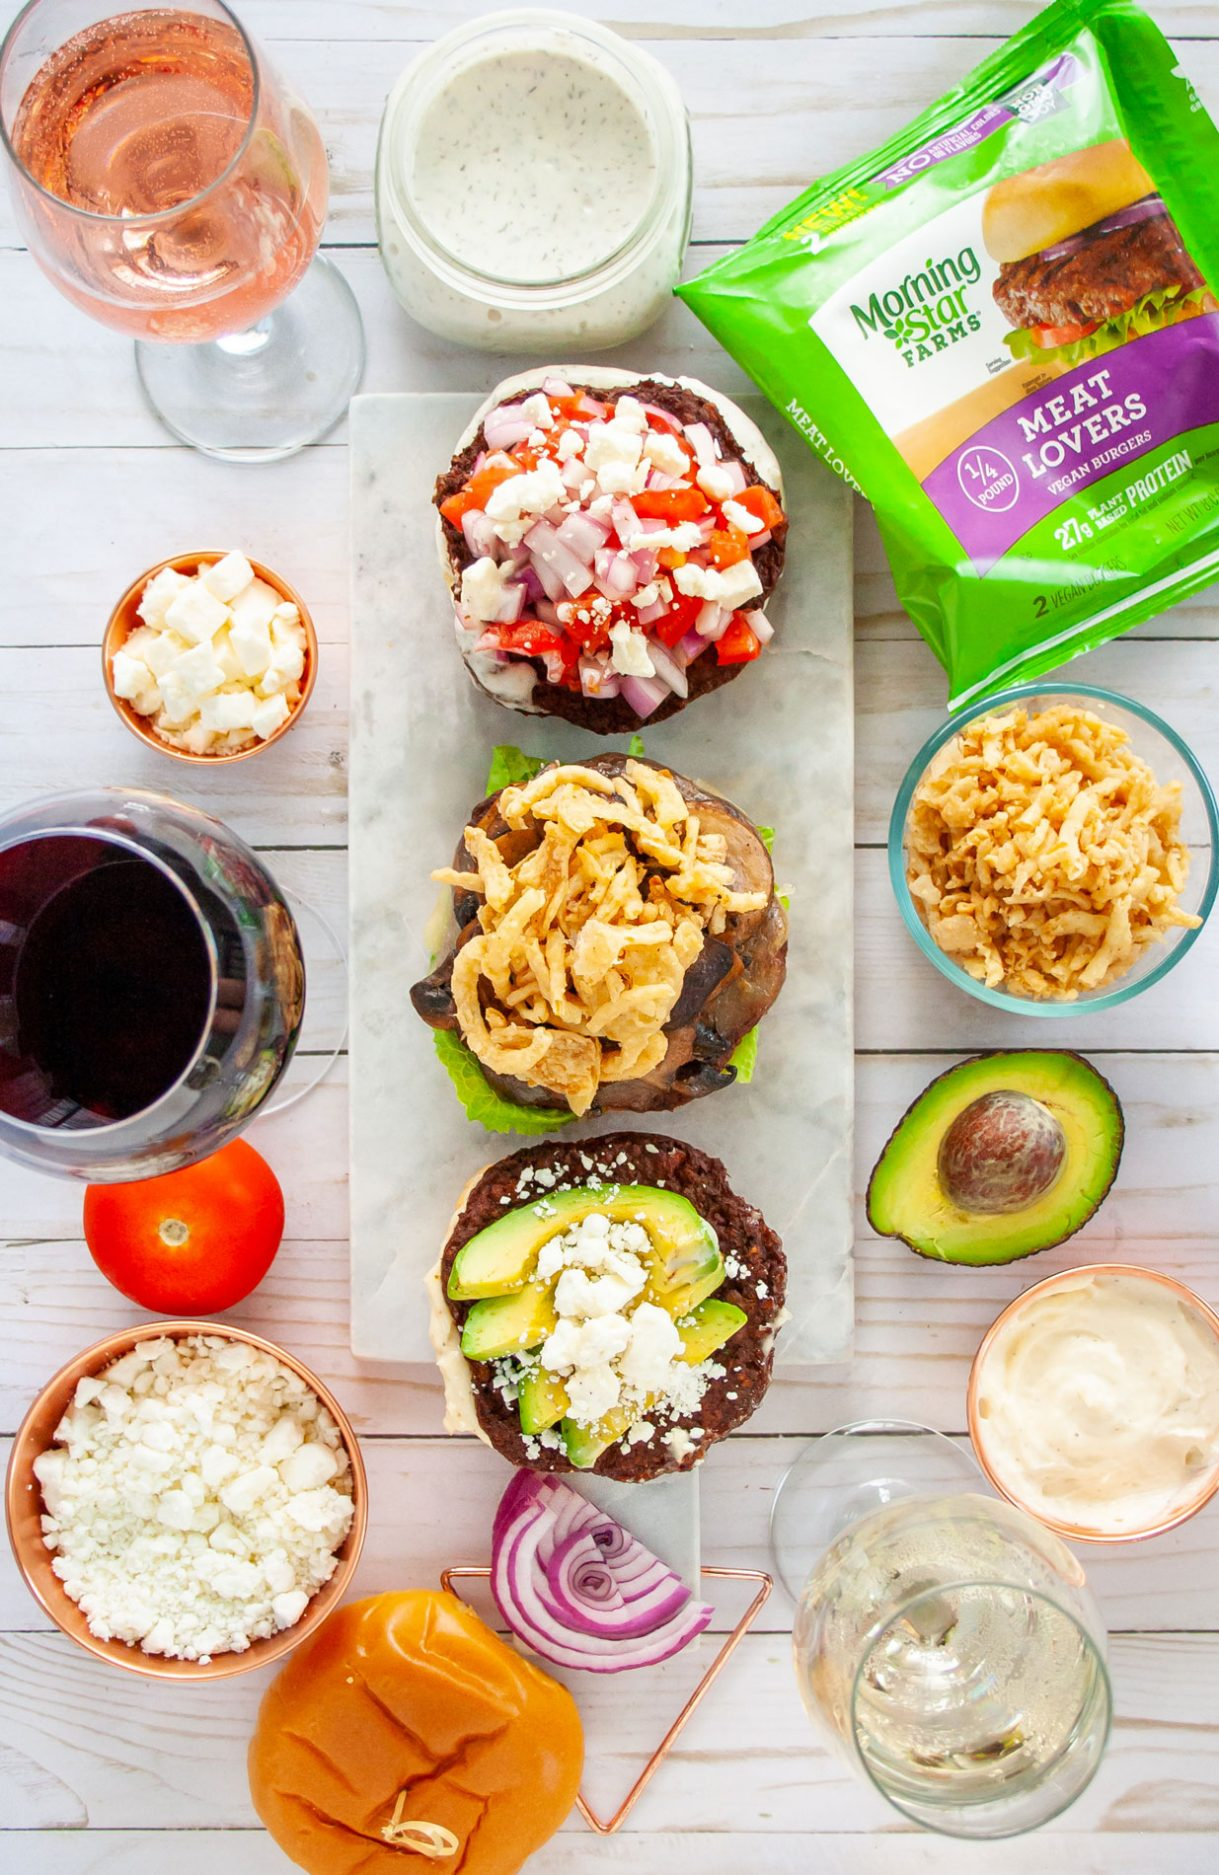 Msg 21+ Wether you're looking for Meatless Monday recipes or for a fun way to entertain these grilled meatless Burger and Wine Pairings are sure to be a satisfying hit. With recipes for pairing wine to a Mushroom Swiss Burger, Avocado Burger, and a Greek Burger. @morningstarfrms @walmart #ad #MorningStarFarms #MakeRoomOnYourGrill #GrillingRecipe #Burgers #Summerrecipes #Winepairing #winenight #meatlessmonday #meatlessrecipes